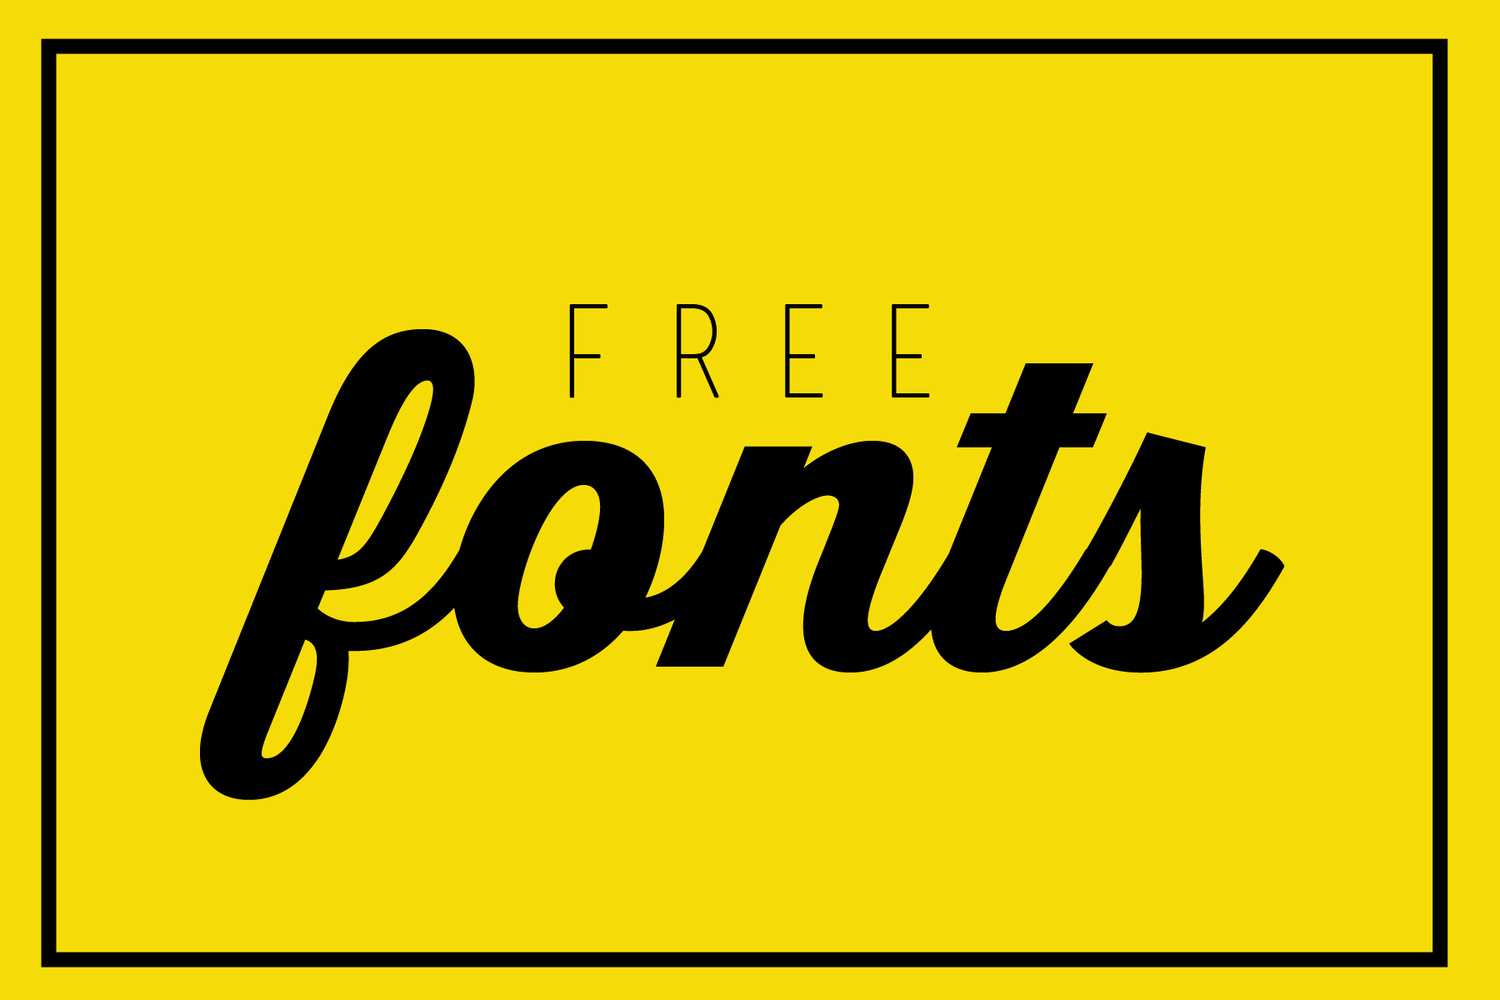 Want to get free fonts? — Beard and Bible